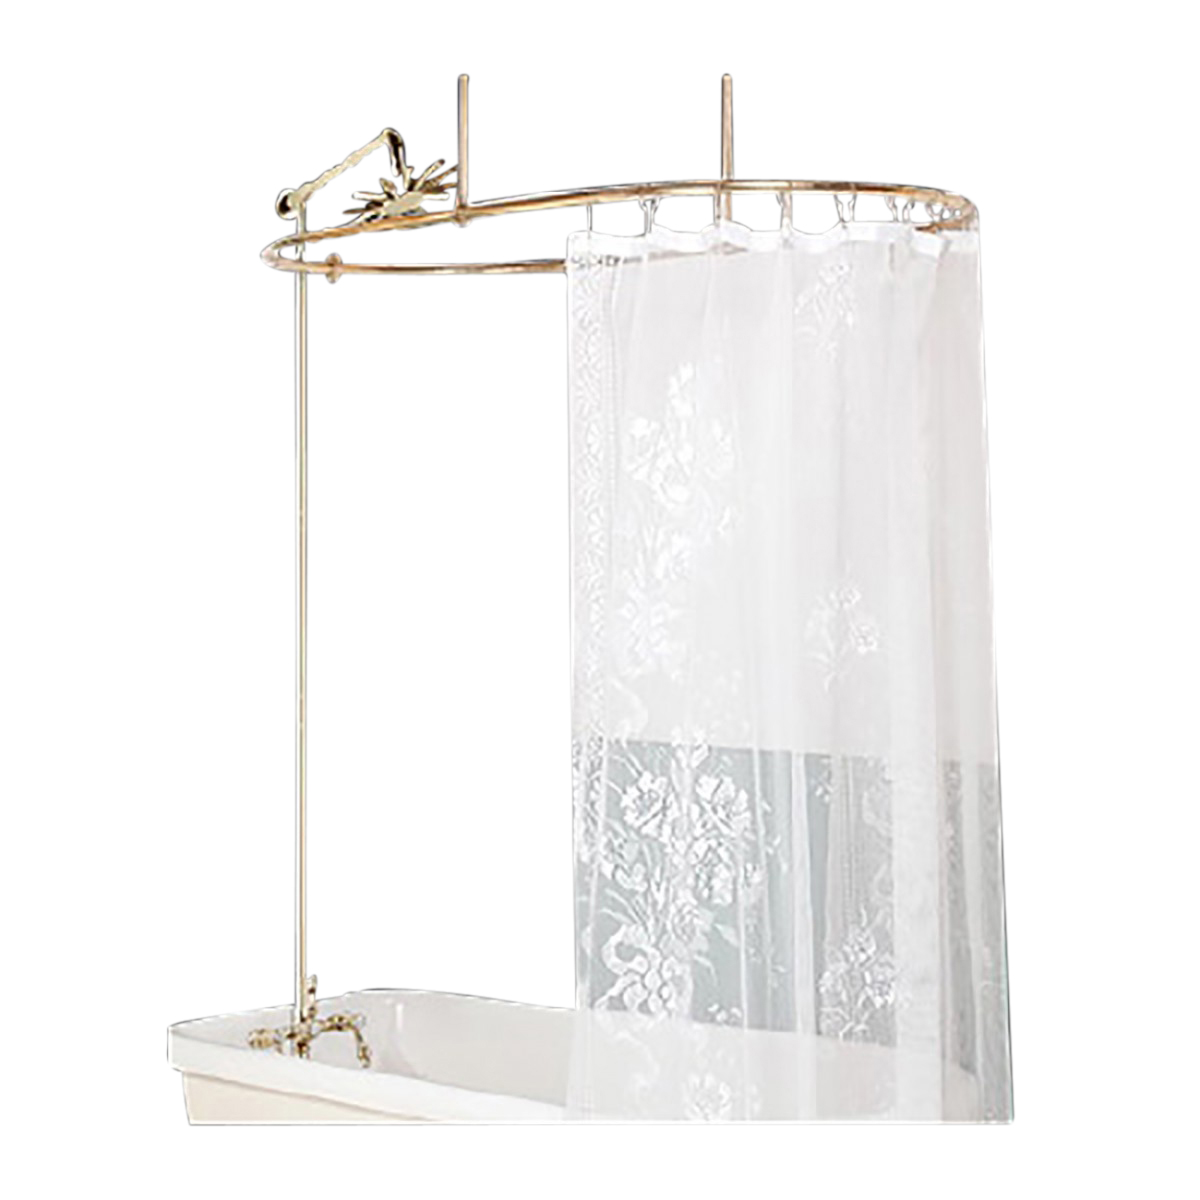 Luxury Claw Foot Tub Shower Curtain Tuckr Box Decors How To